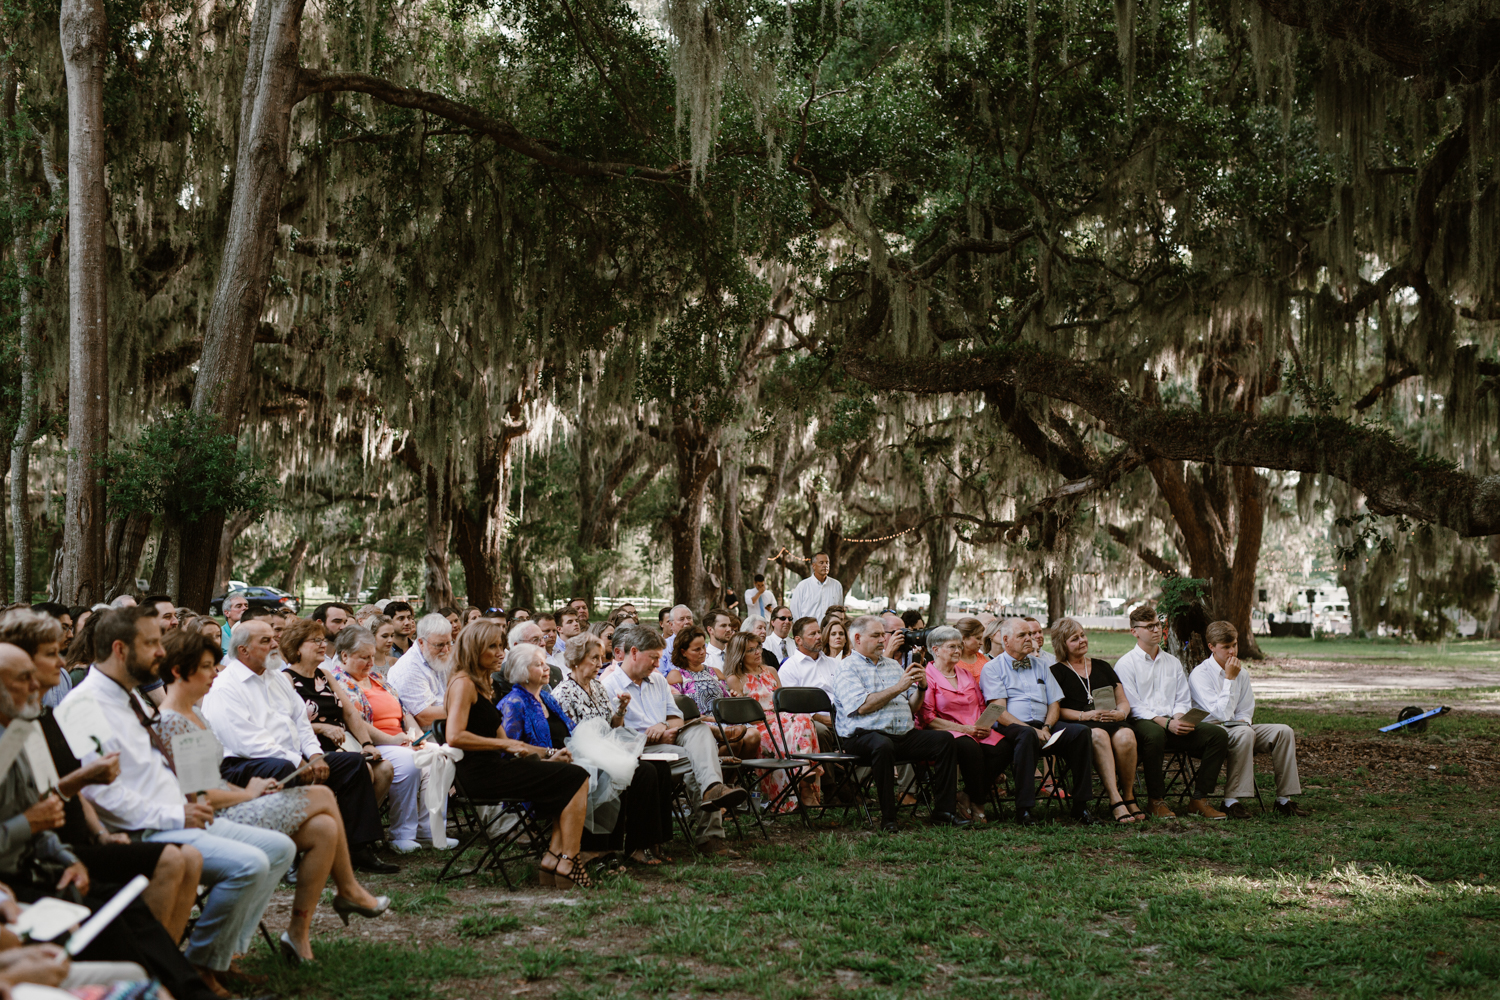 boho_saint_simons_island_wedding-8217